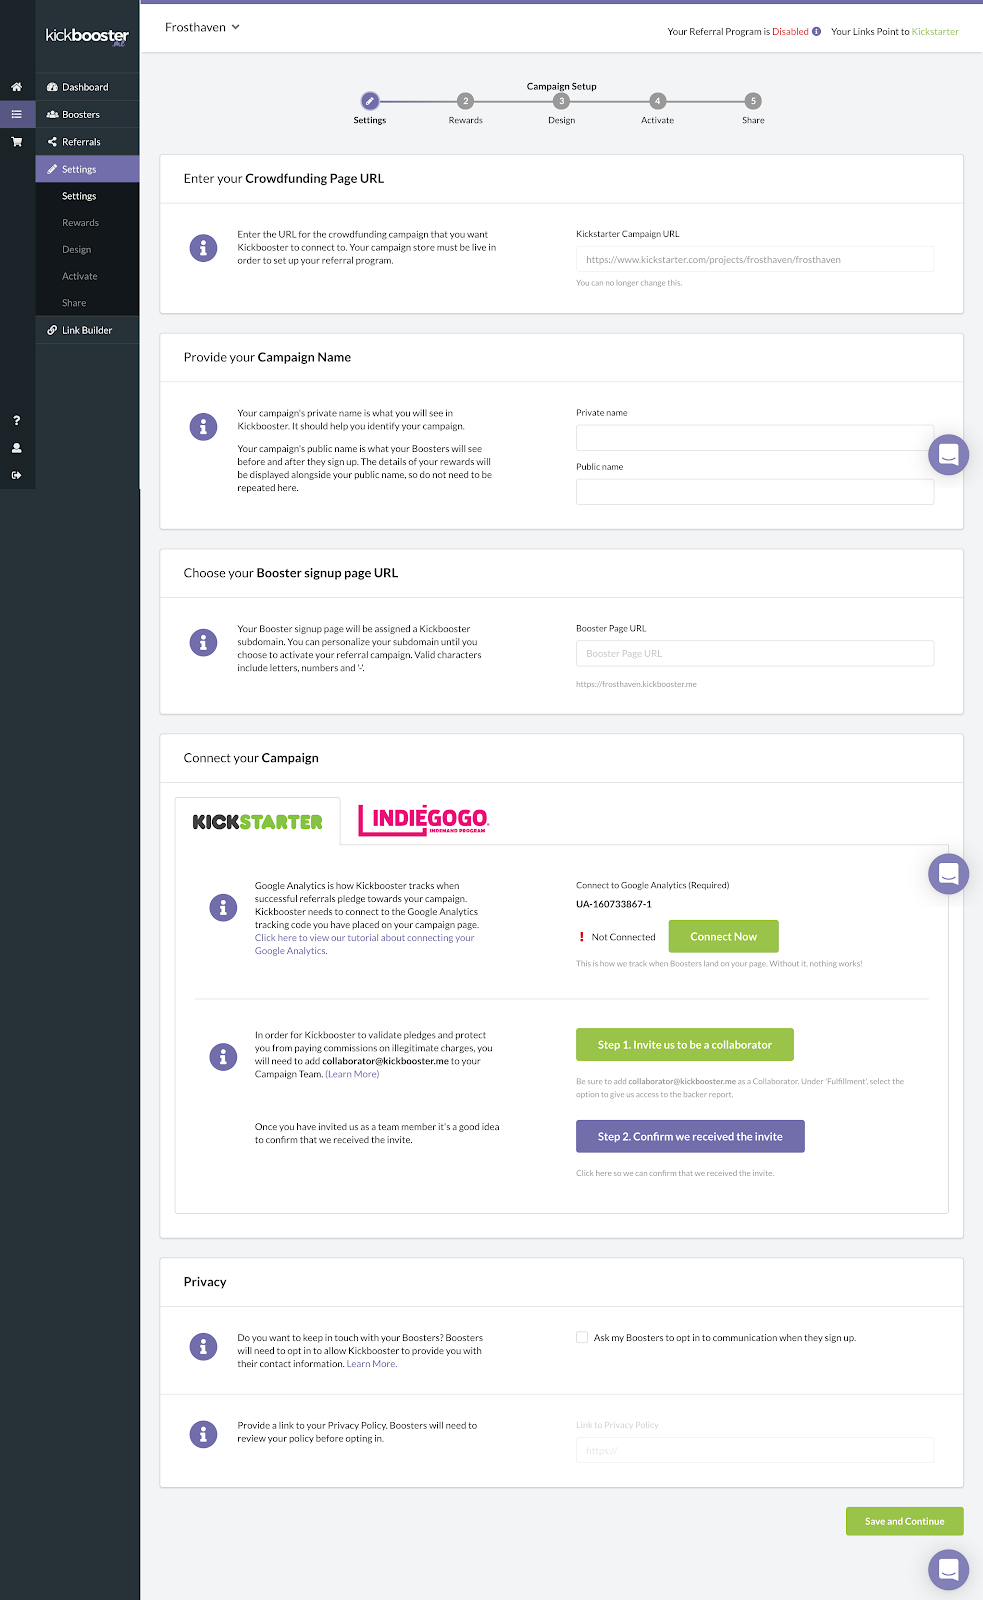 kickbooster review how to fill in your project